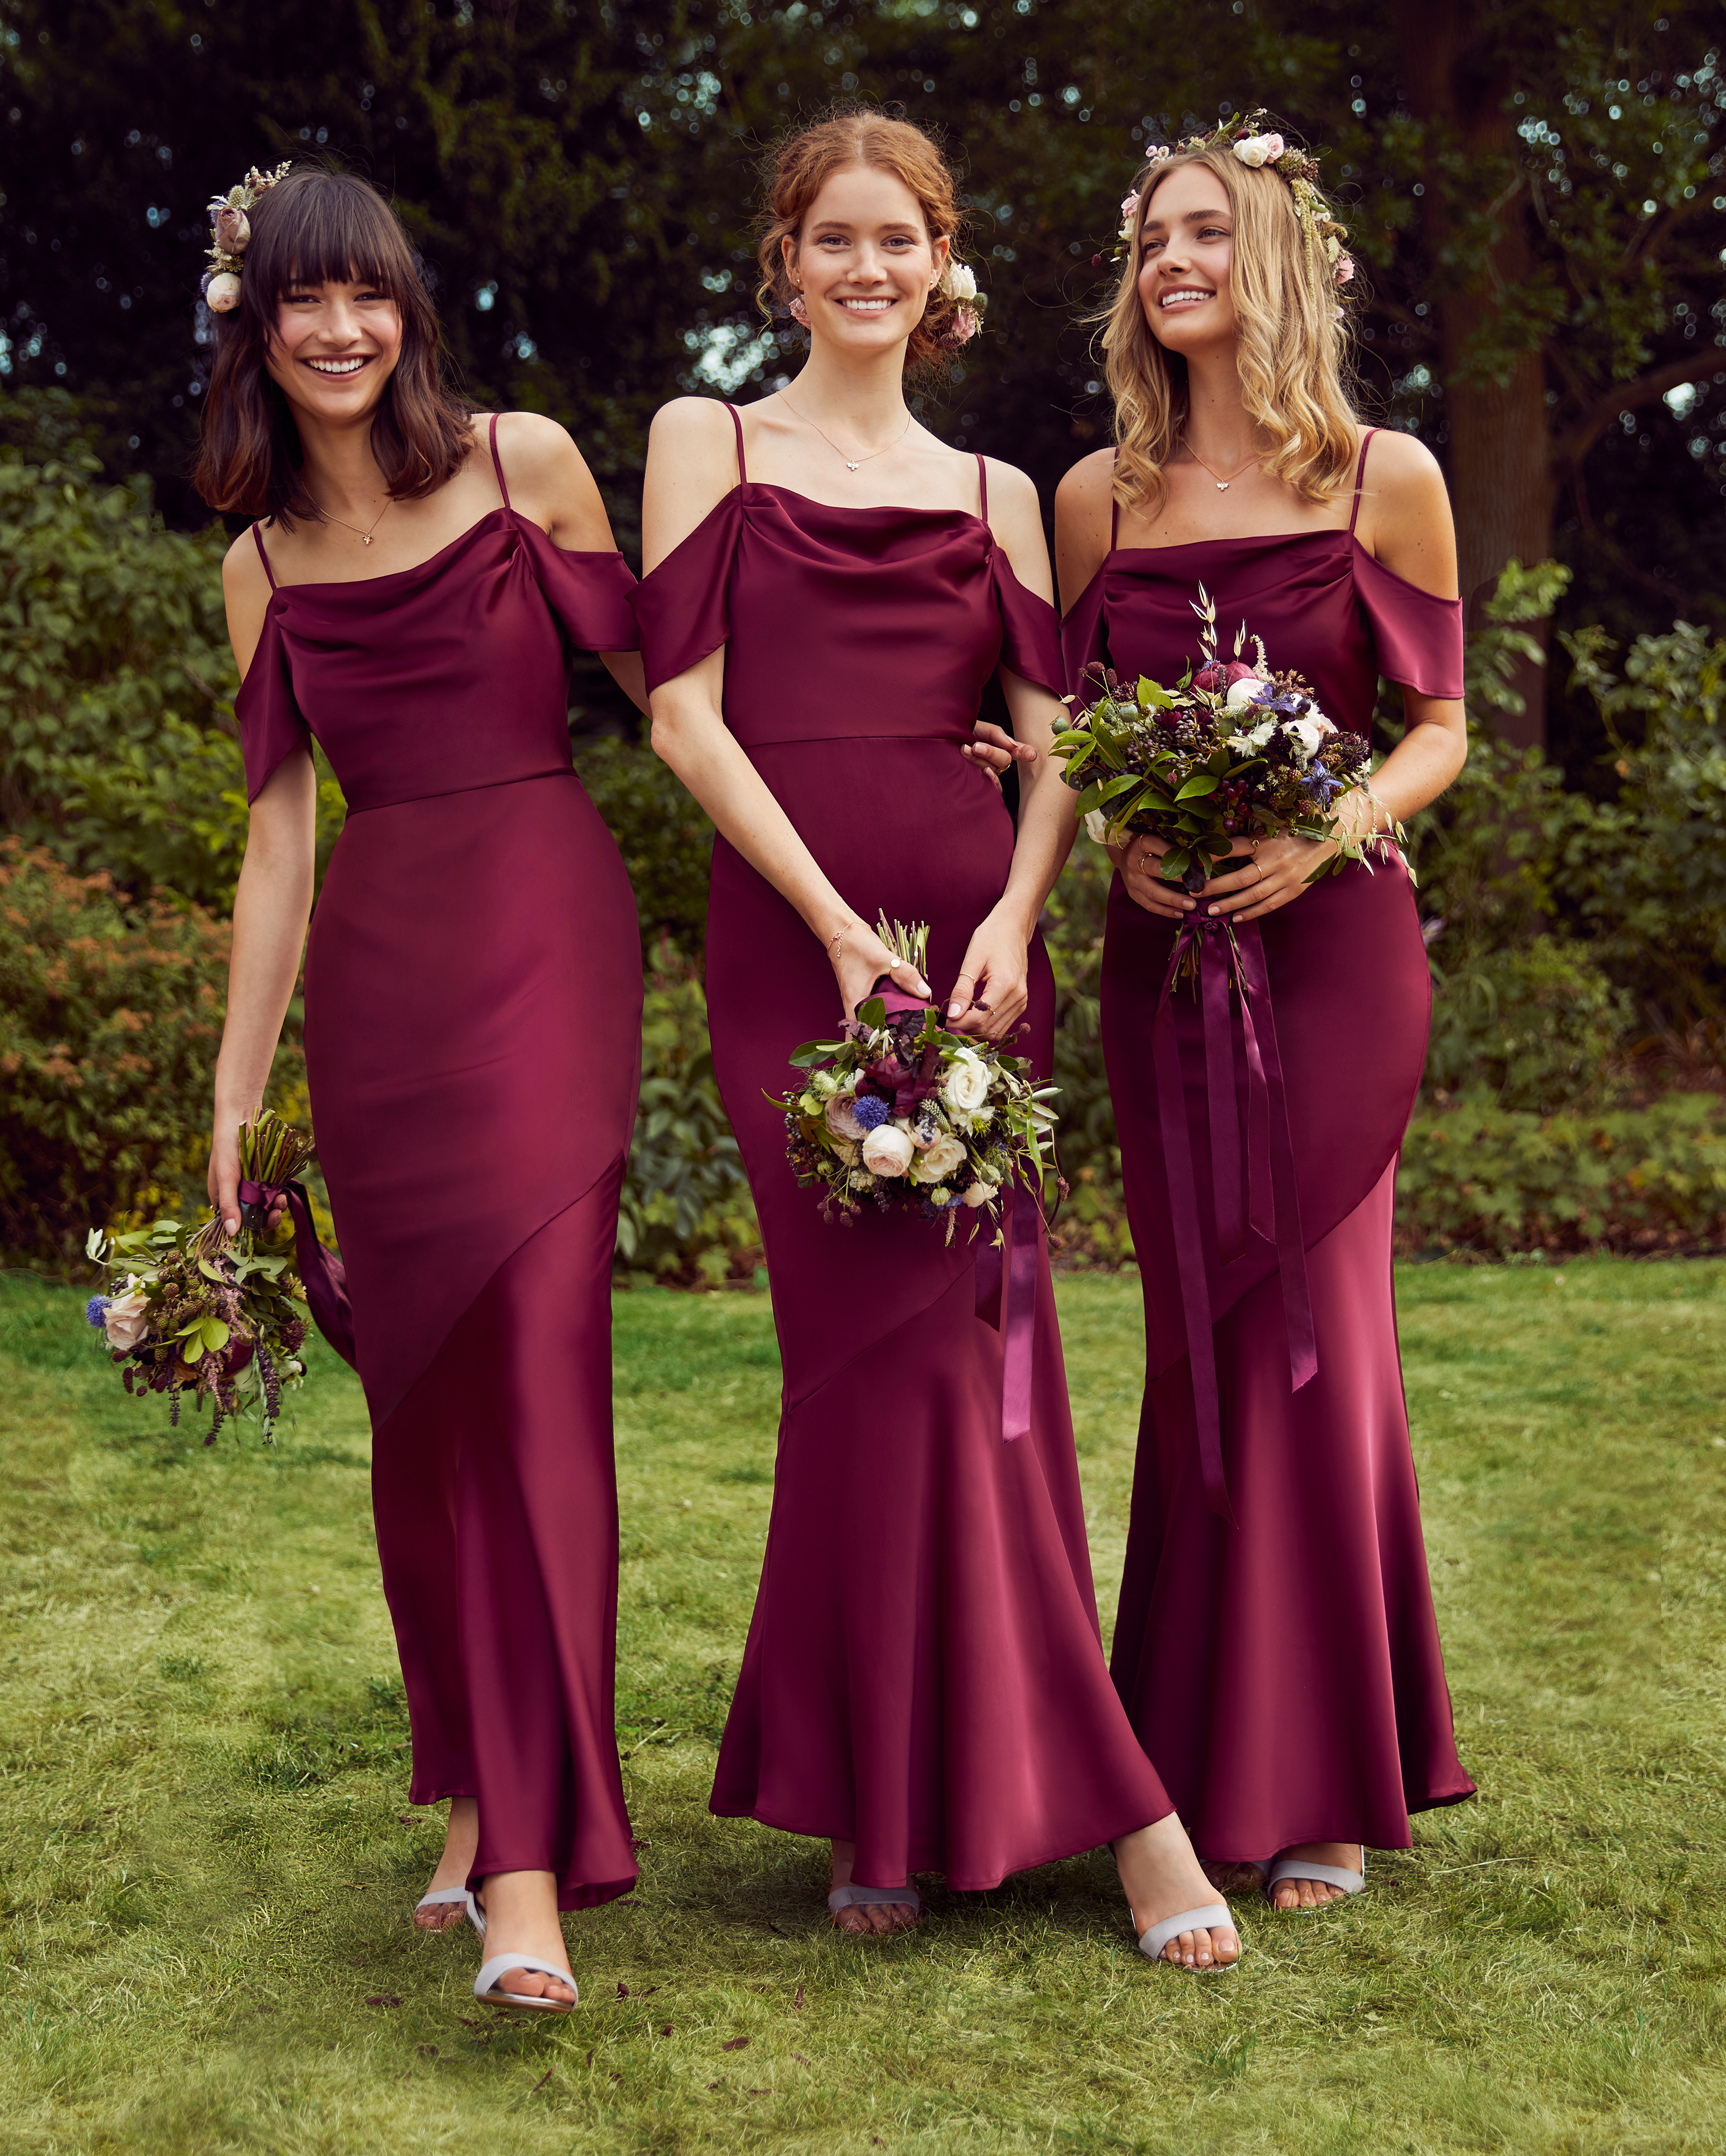 33d70a3a0c7 11 bridesmaid dresses you ll actually want to wear again (and they ...